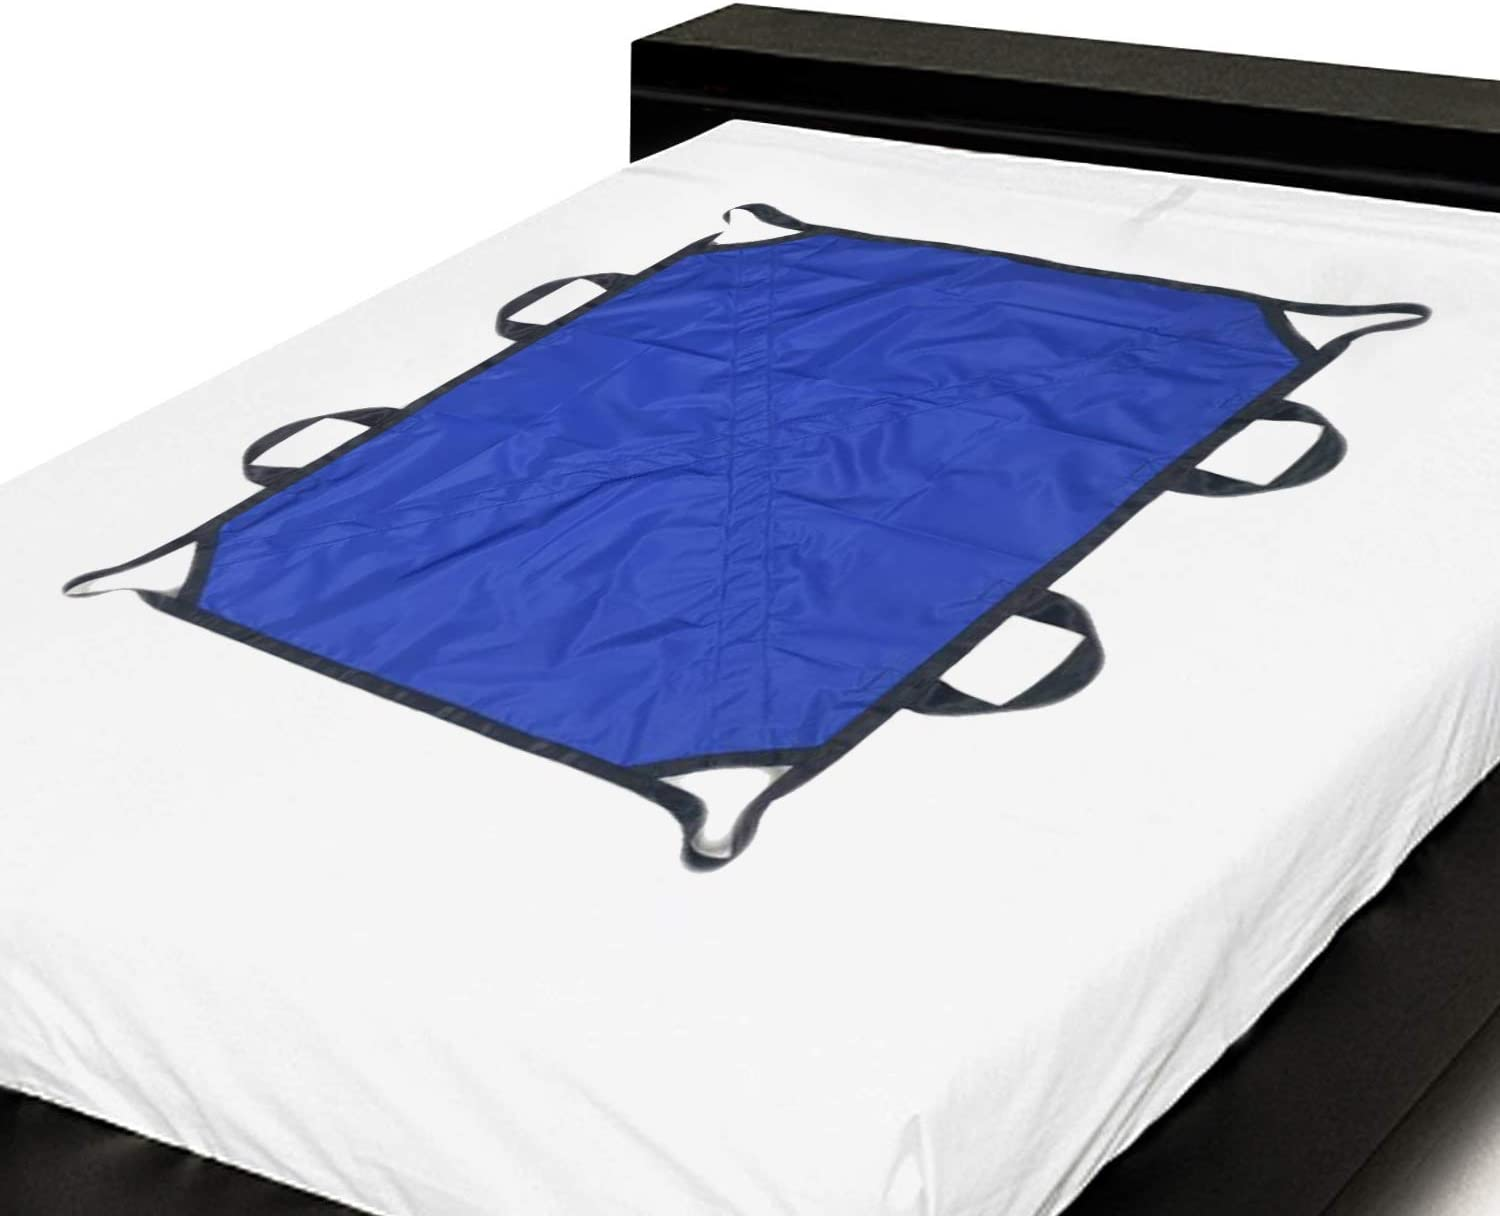 Positioning Bed Pad Patient Repositioning Slide Draw Sheet with Handles Disability Aids for Hospital Bedridden Lift Moving Patient Elderly Seniors Turner Transfer Sling Home Nursing 48